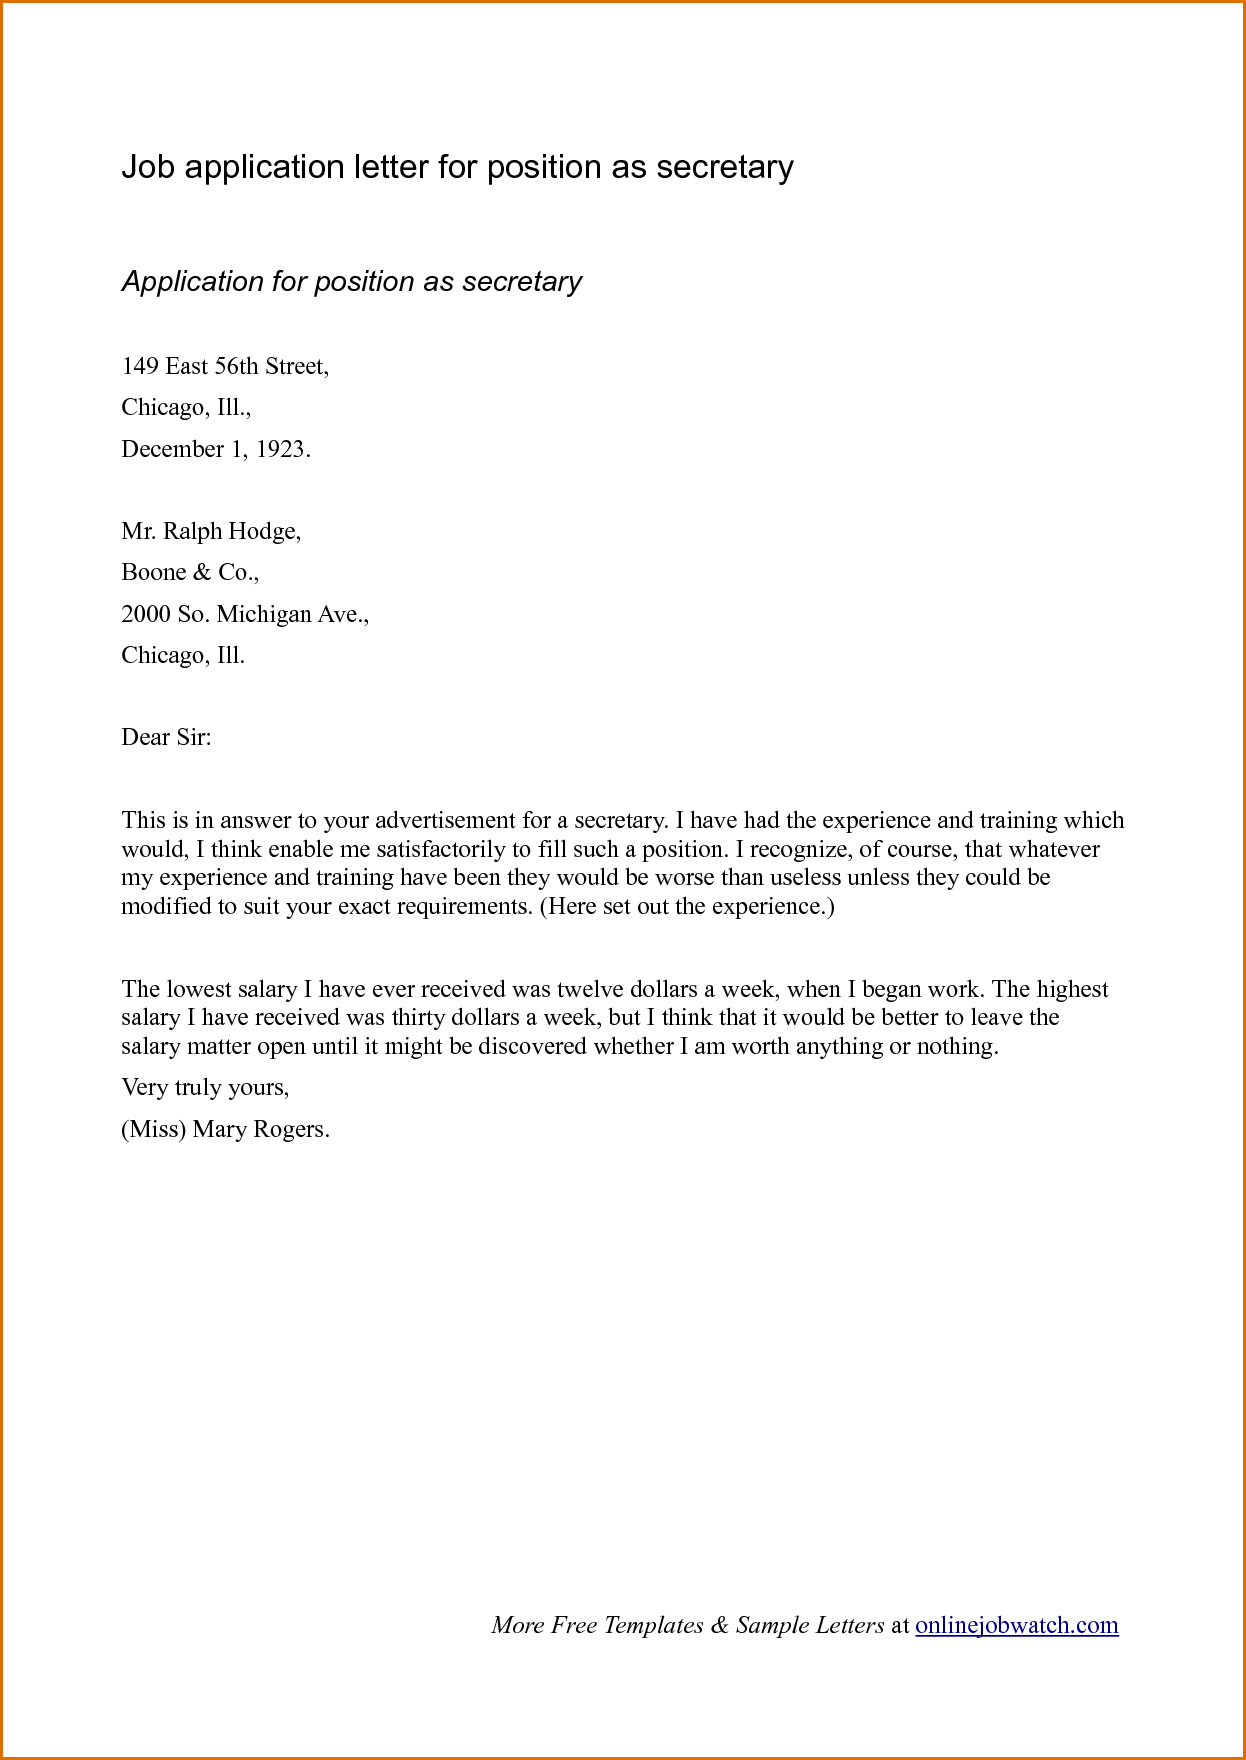 cover letter format for job application sample cover letter format for application 21103